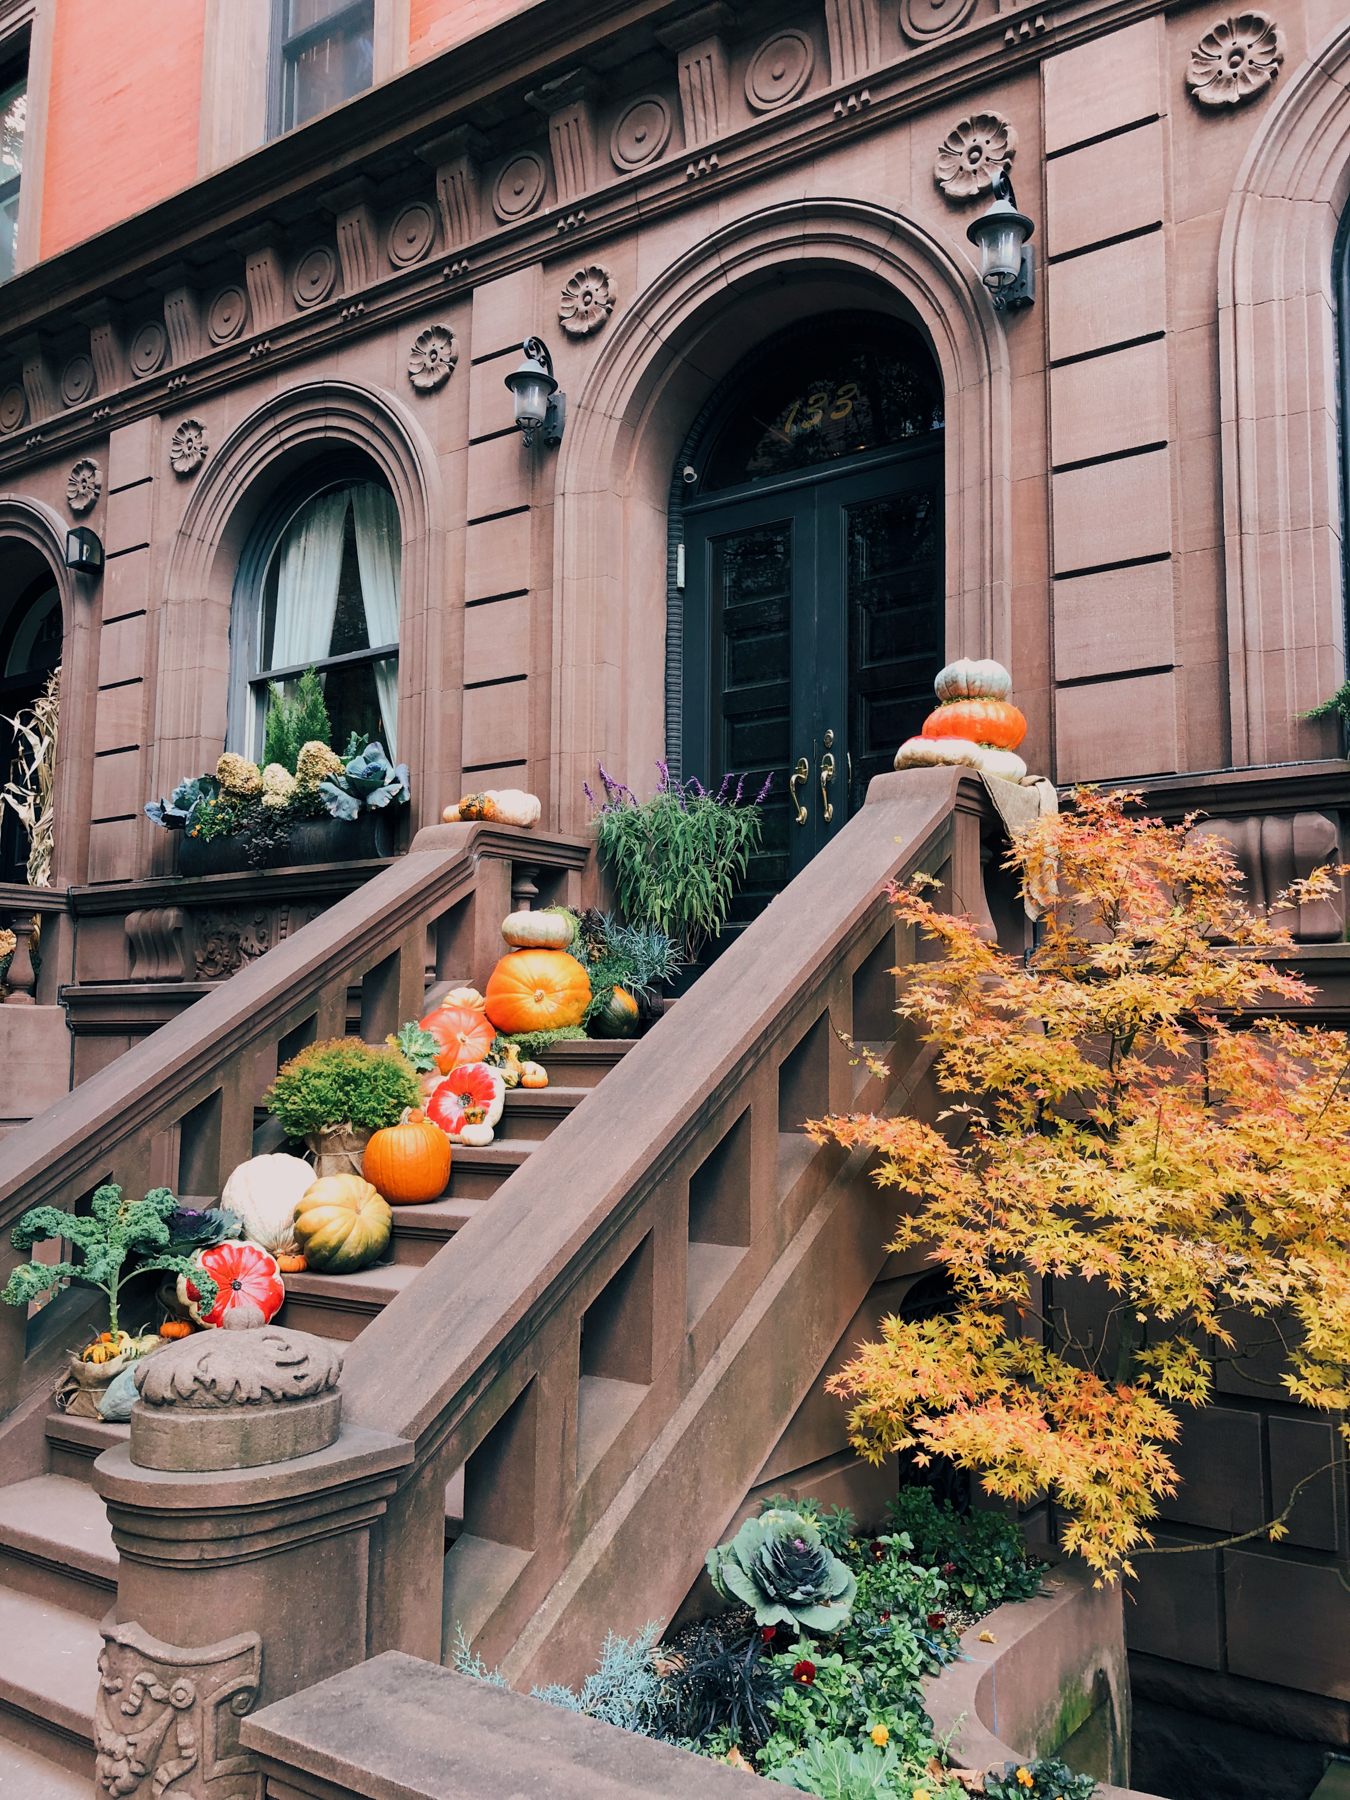 Brownstone on W 69th St.